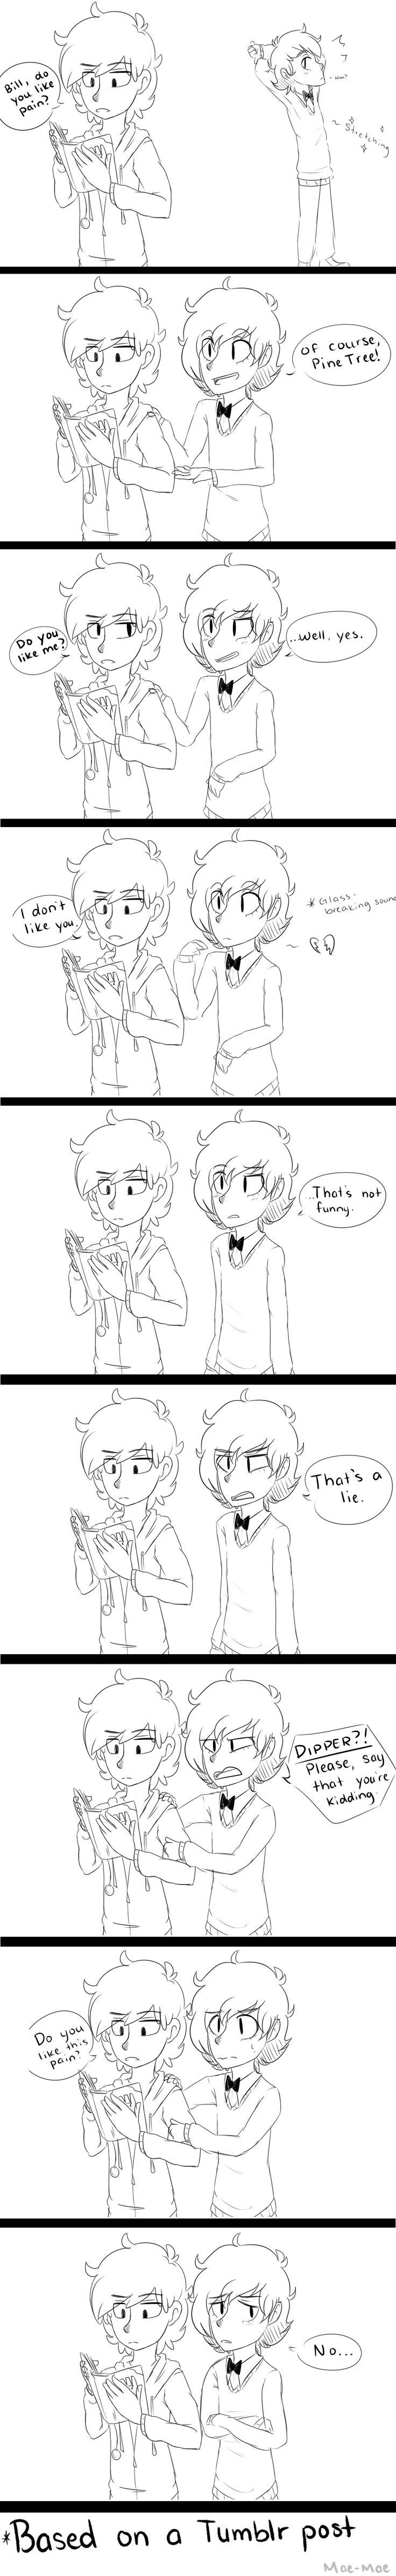 Pain is hilarious? (comic based on a Tumblr post) by maeven3 on DeviantArt - Nacho's feelings = hurt. Damn, Dipper.